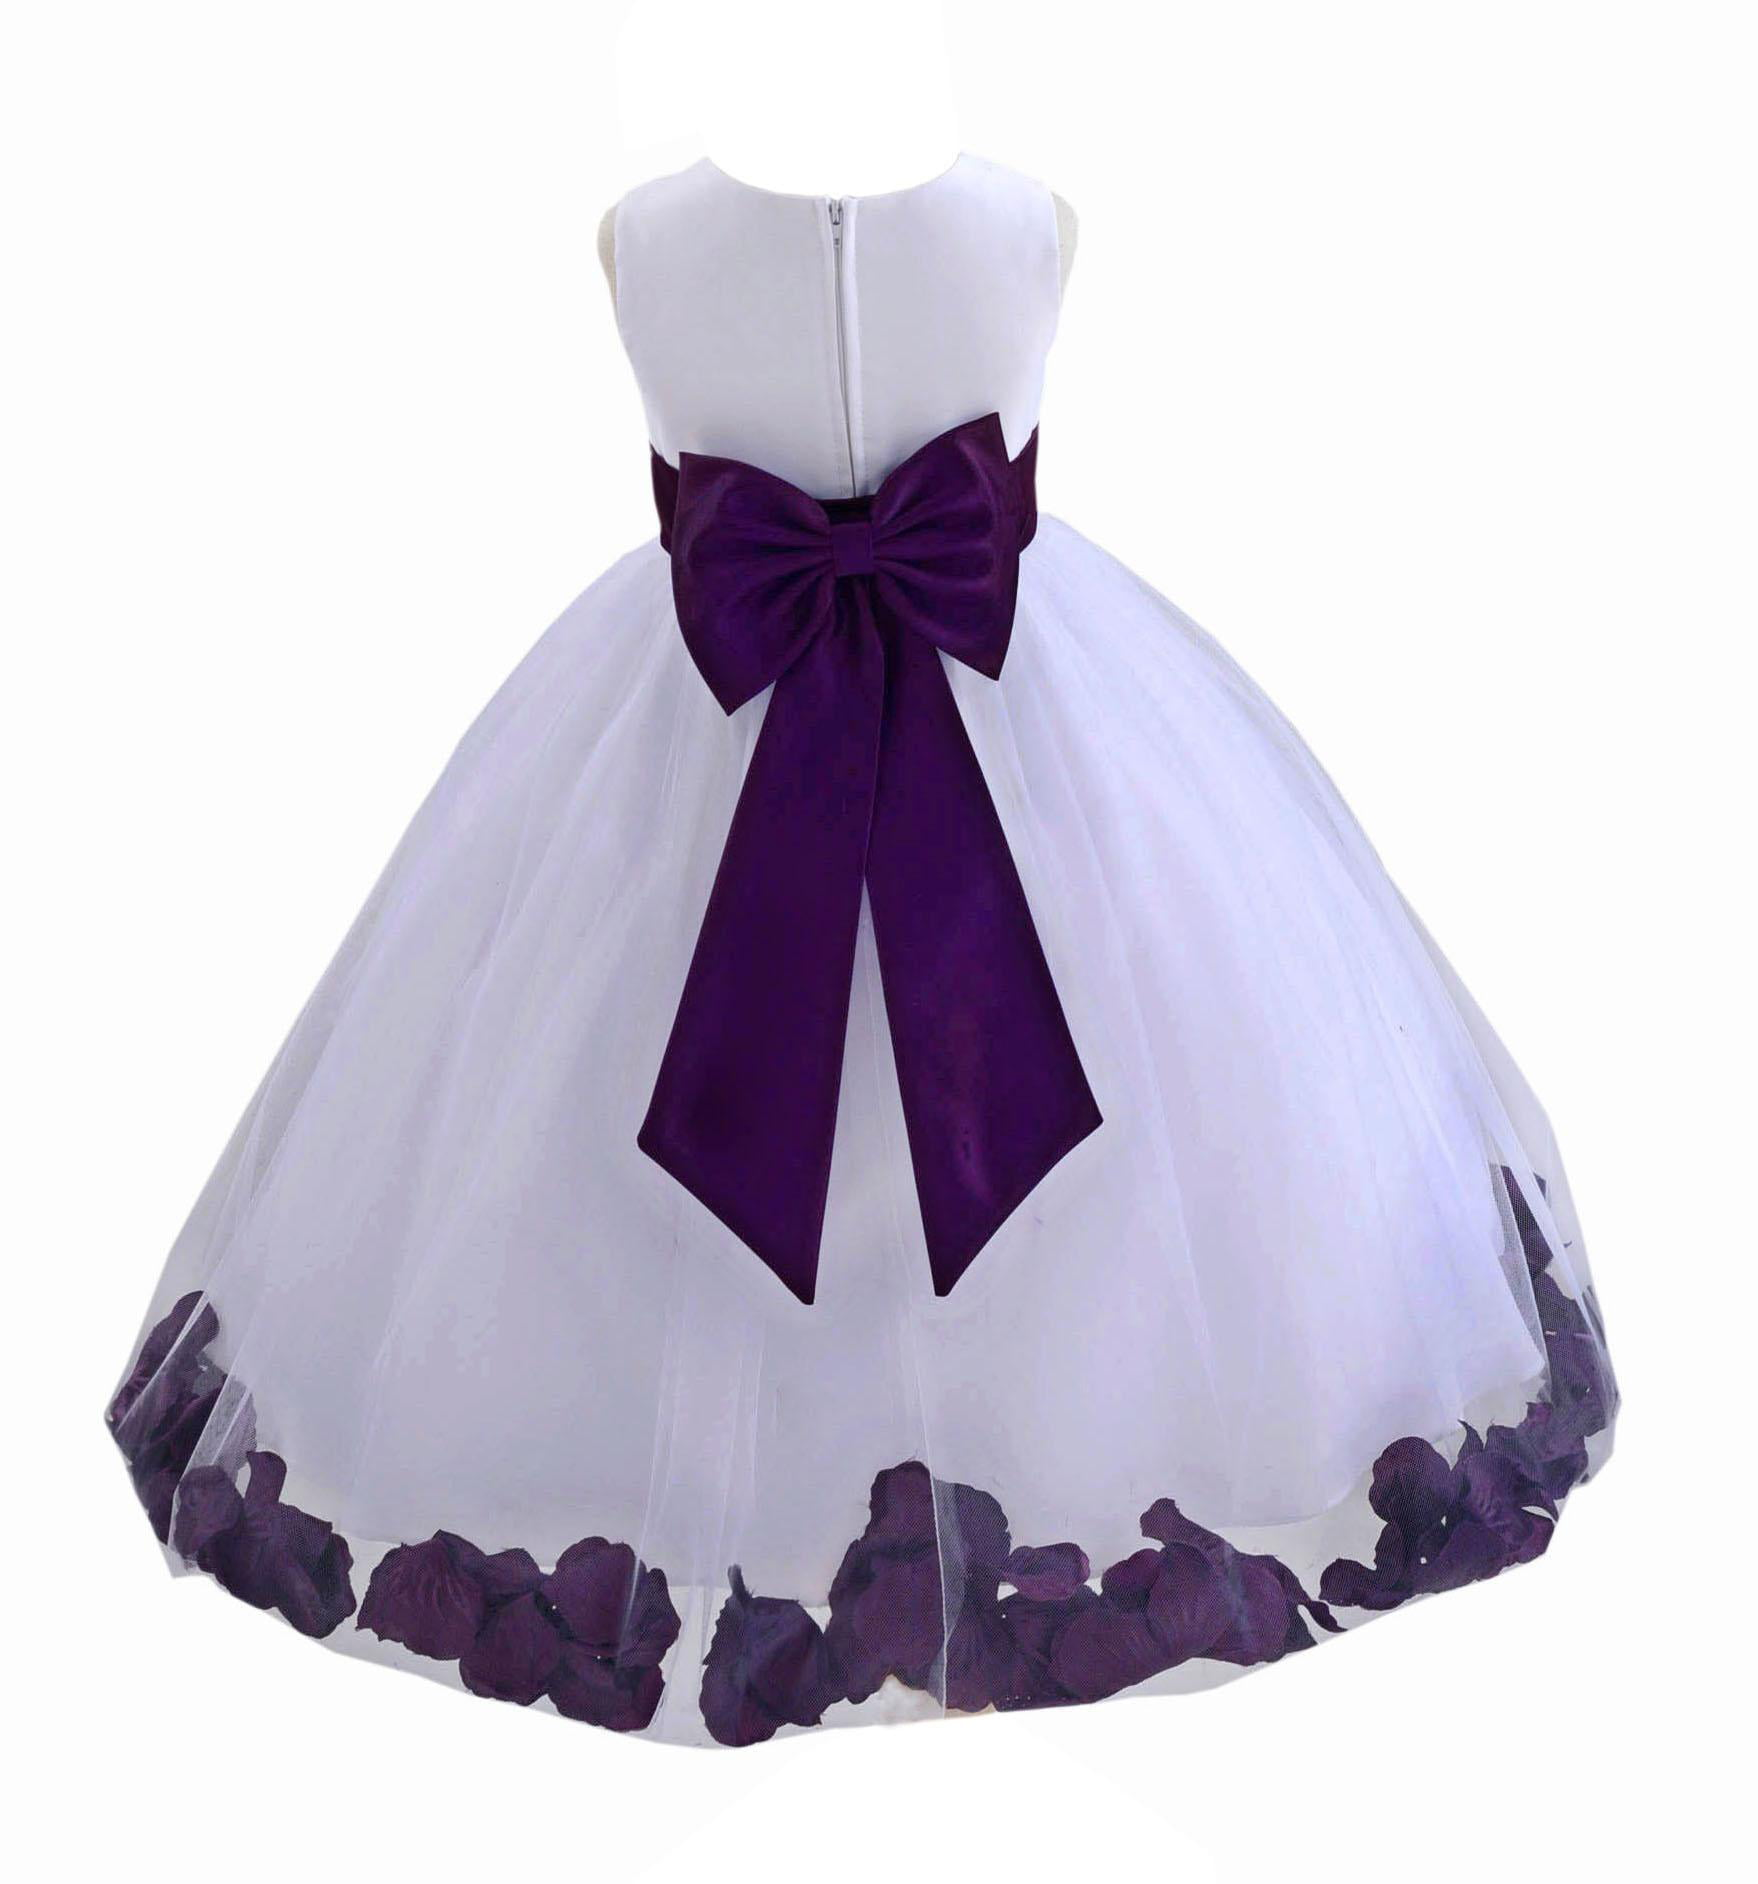 Ekidsbridal wedding pageant rose petals white tulle flower girl ekidsbridal wedding pageant rose petals white tulle flower girl dress toddler special occasion 302t purple 4 walmart mightylinksfo